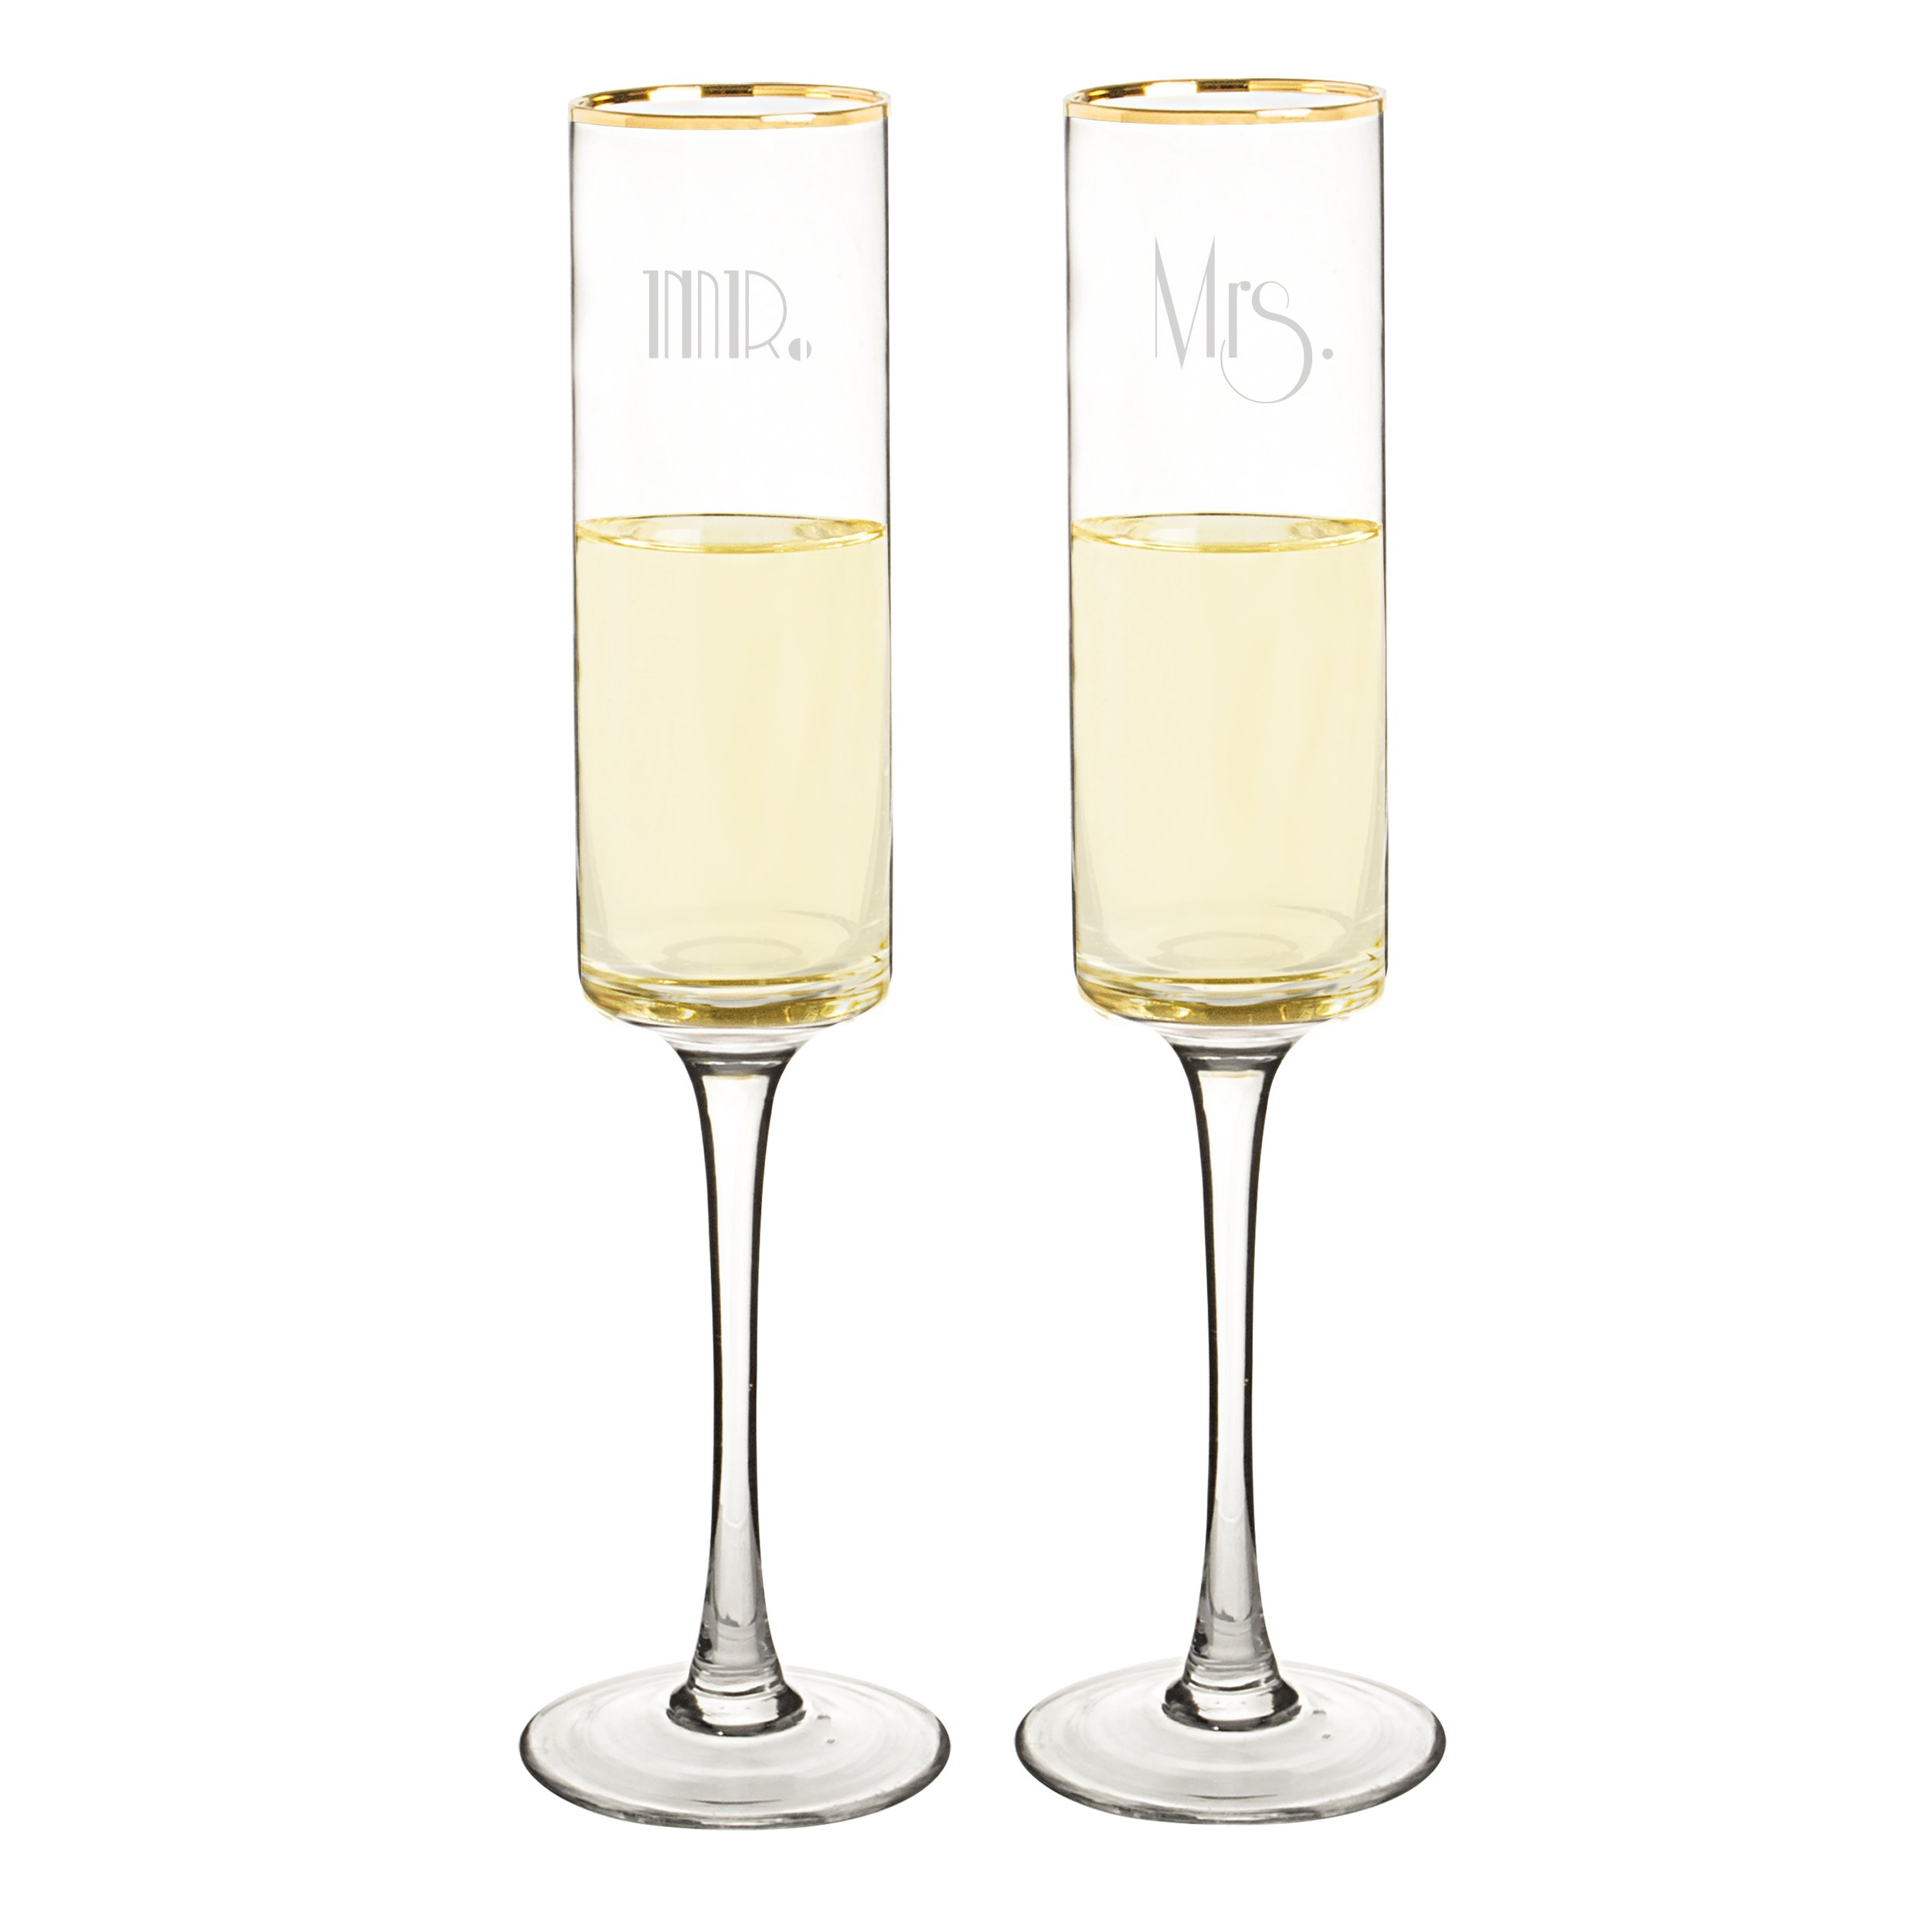 Cathy's Concepts GMM-3668G Mr. & Mrs. Gatsby Rim Contemporary Champagne Flutes, Clear/Gold by Cathy's Concepts (Image #2)